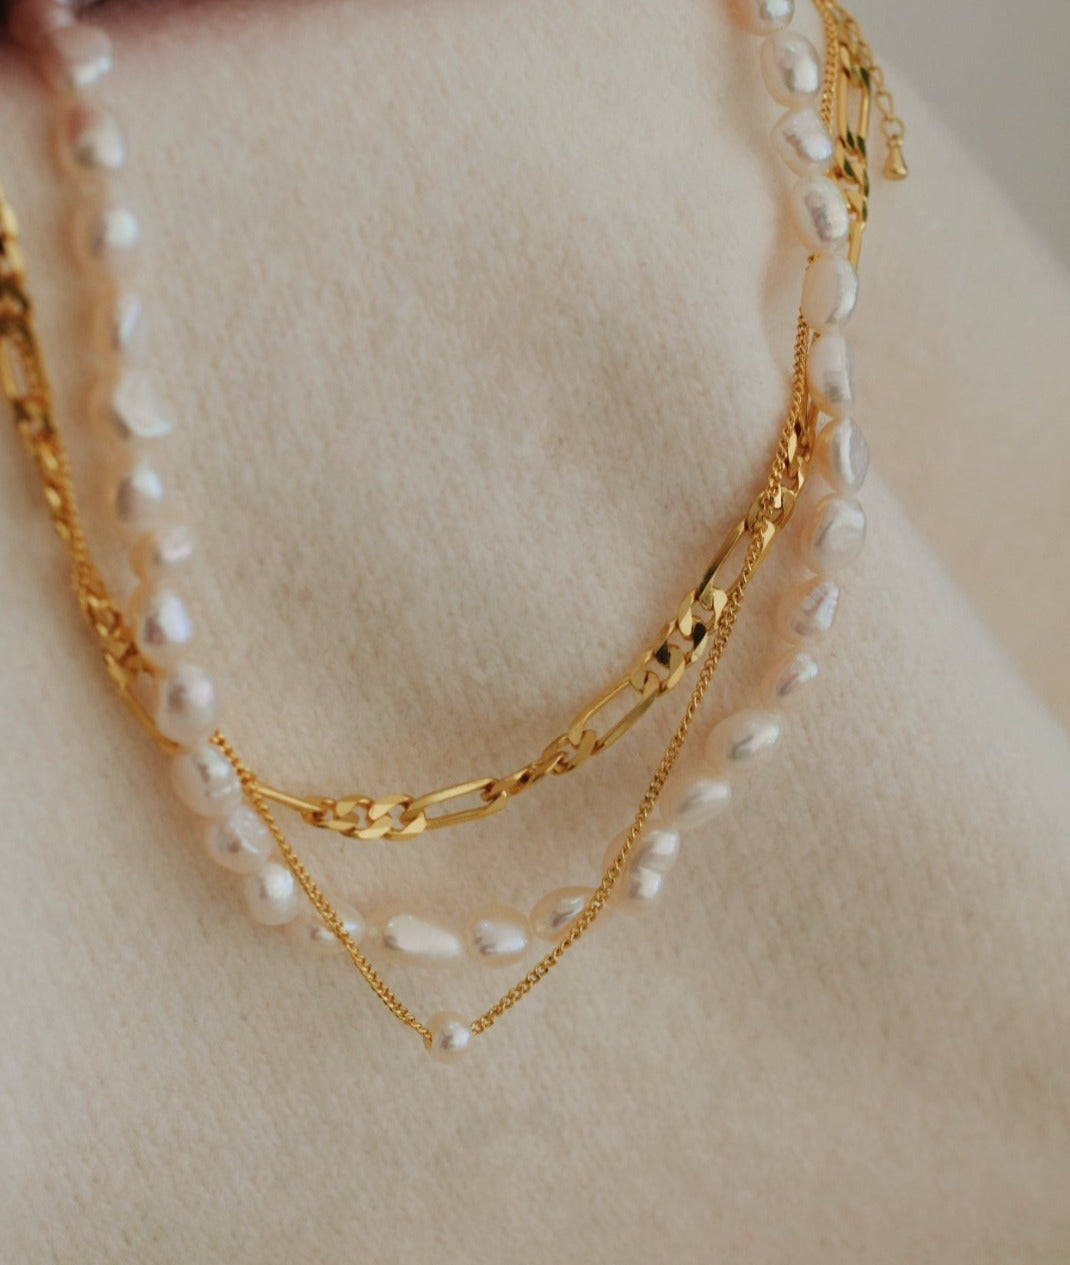 classic white pearl necklace paired with a 18 kt gold figaro chain necklace and a single pearl necklace. All the pieces are layered at 18 kt gold plated on sterling silver available in Kuwait